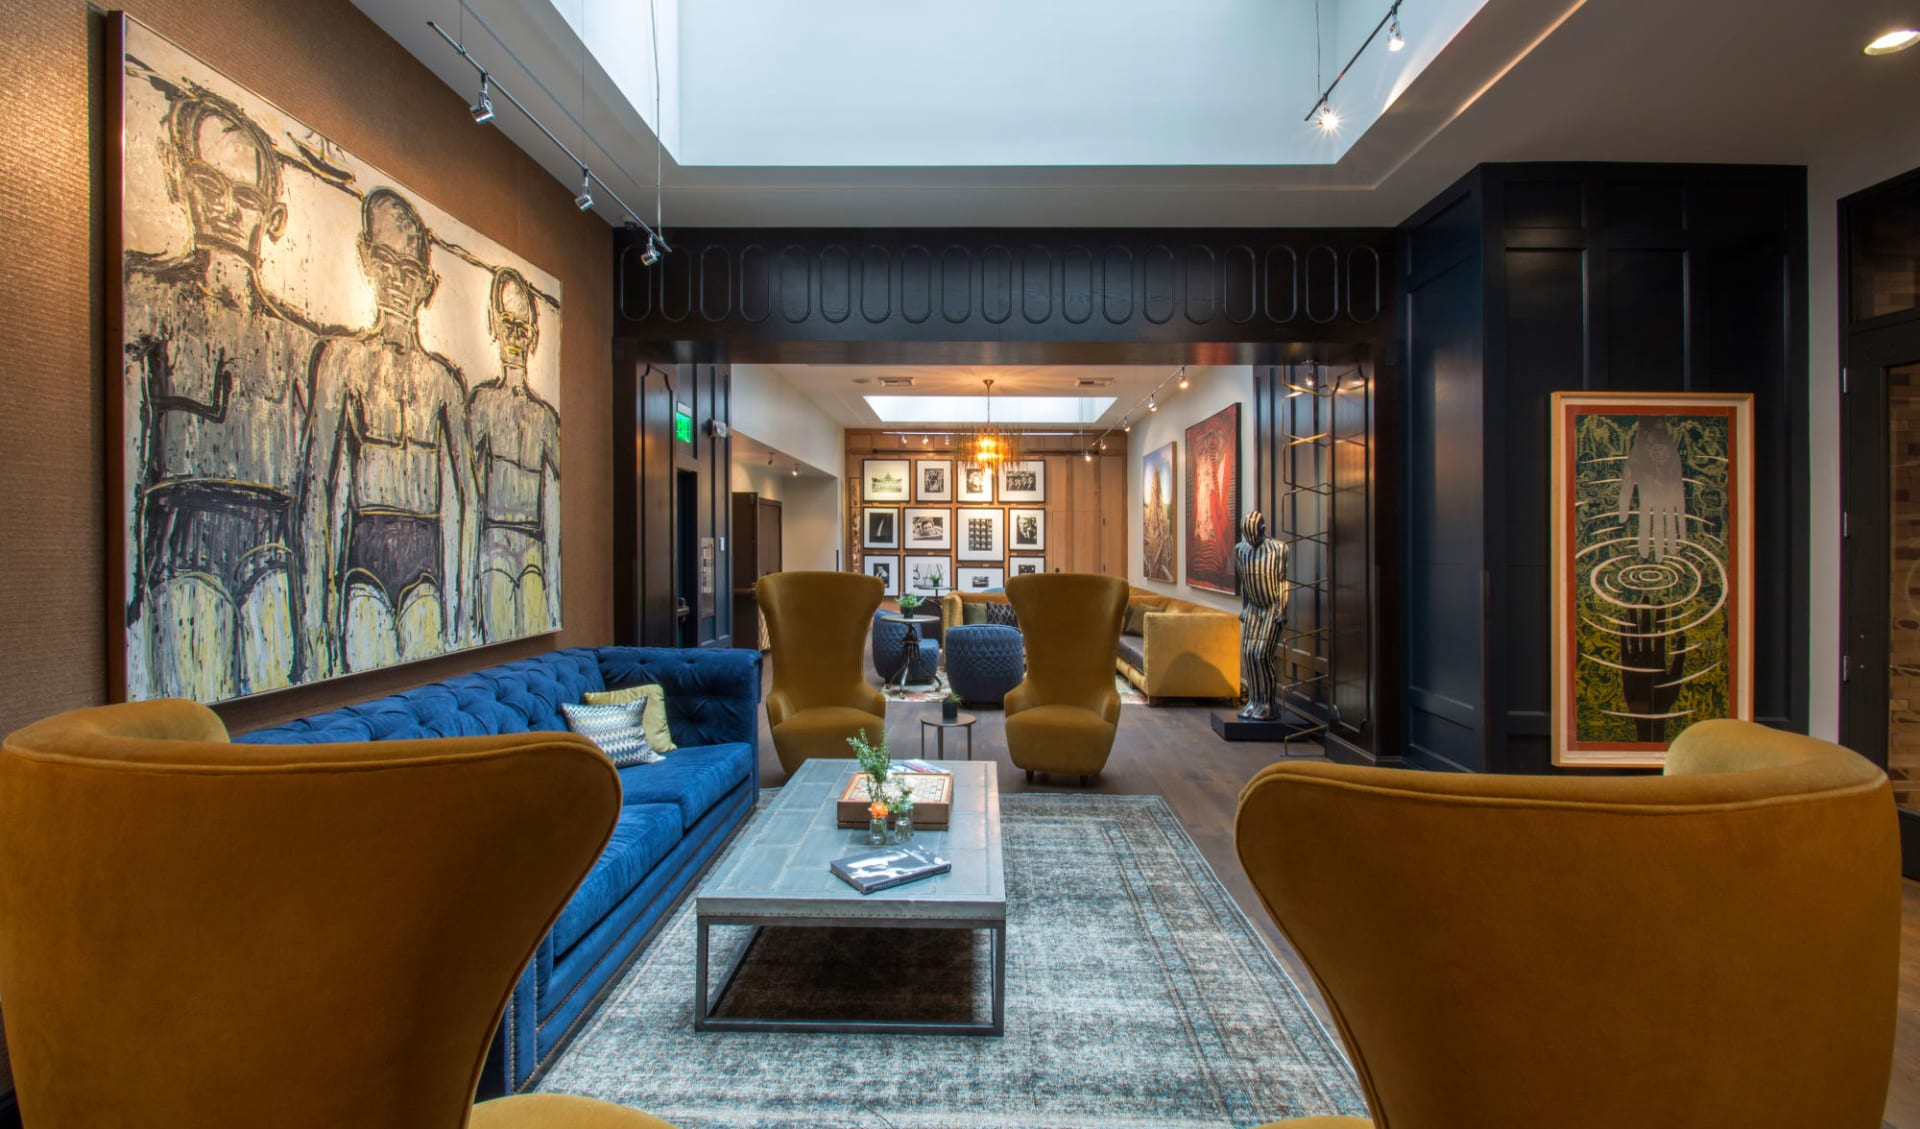 Hotel Lucia in Portland: Facilities_Hotel Lucia_Lobby_Tourmappers